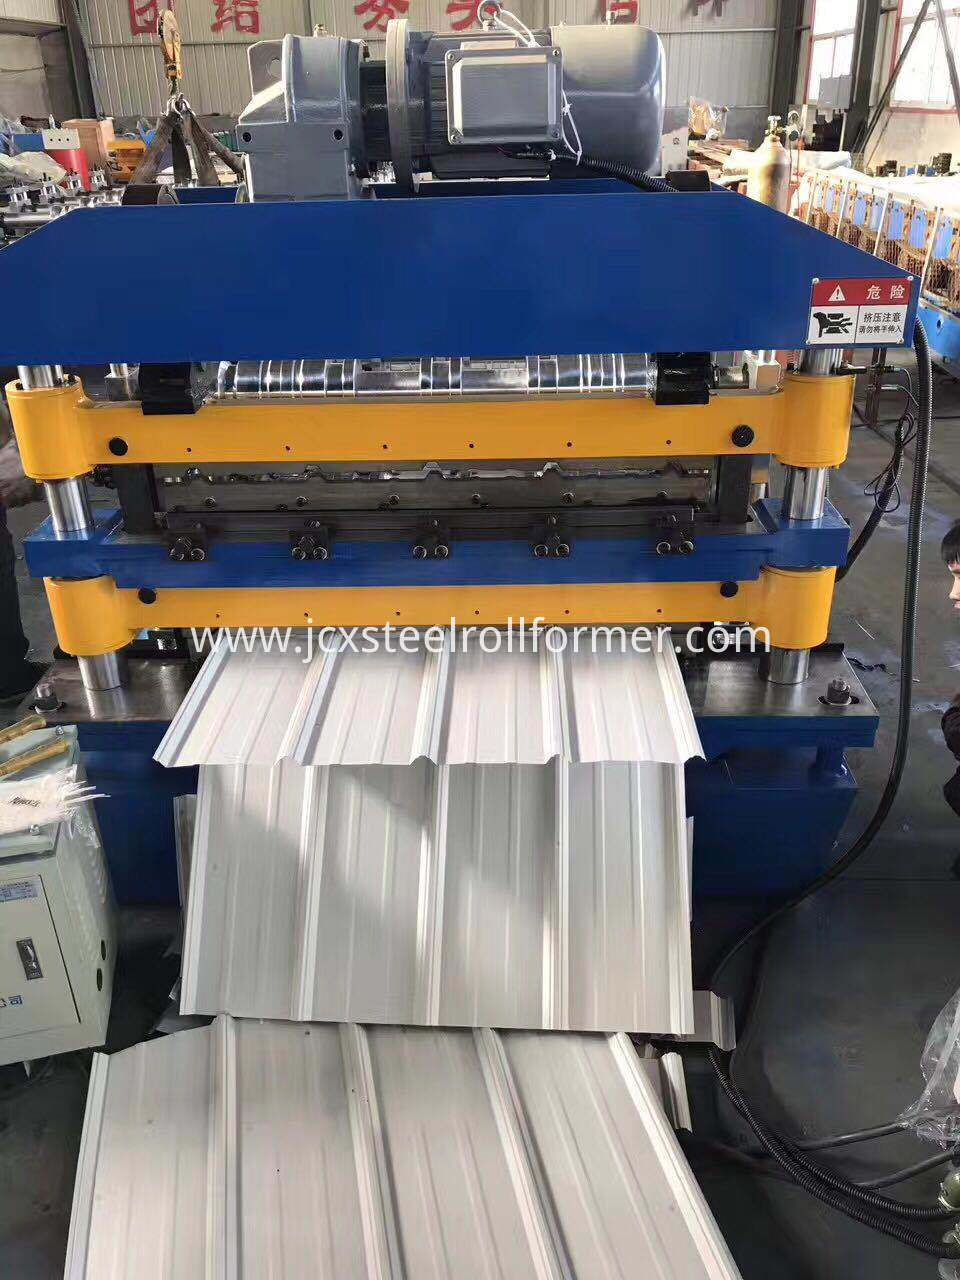 Metal Roofing Roll Forming Equipment